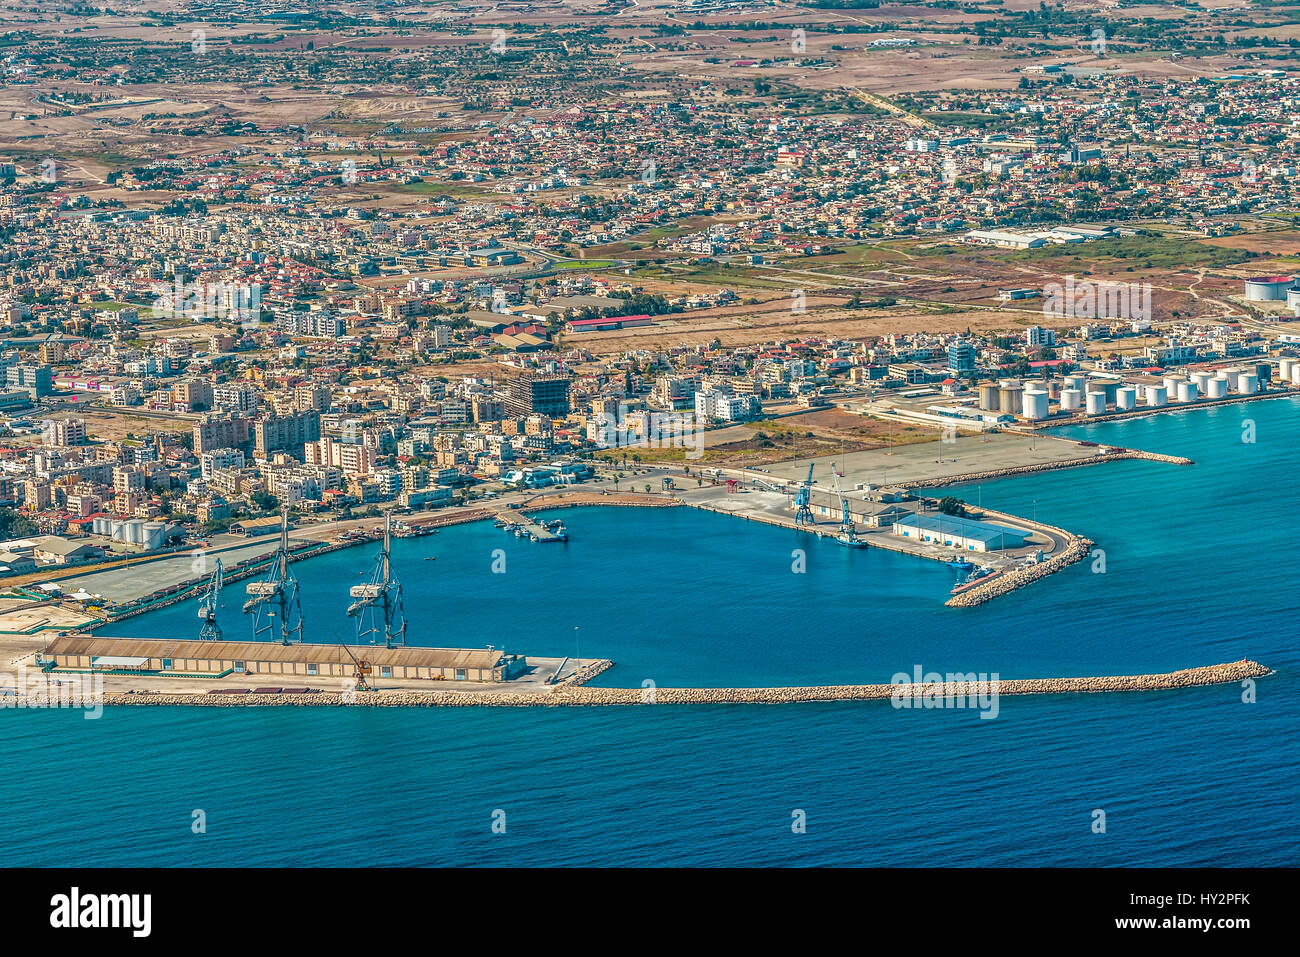 Sea port city of Larnaca, Cyprus.  View from the aircraft to the coastline, beaches, seaport and the architecture Stock Photo